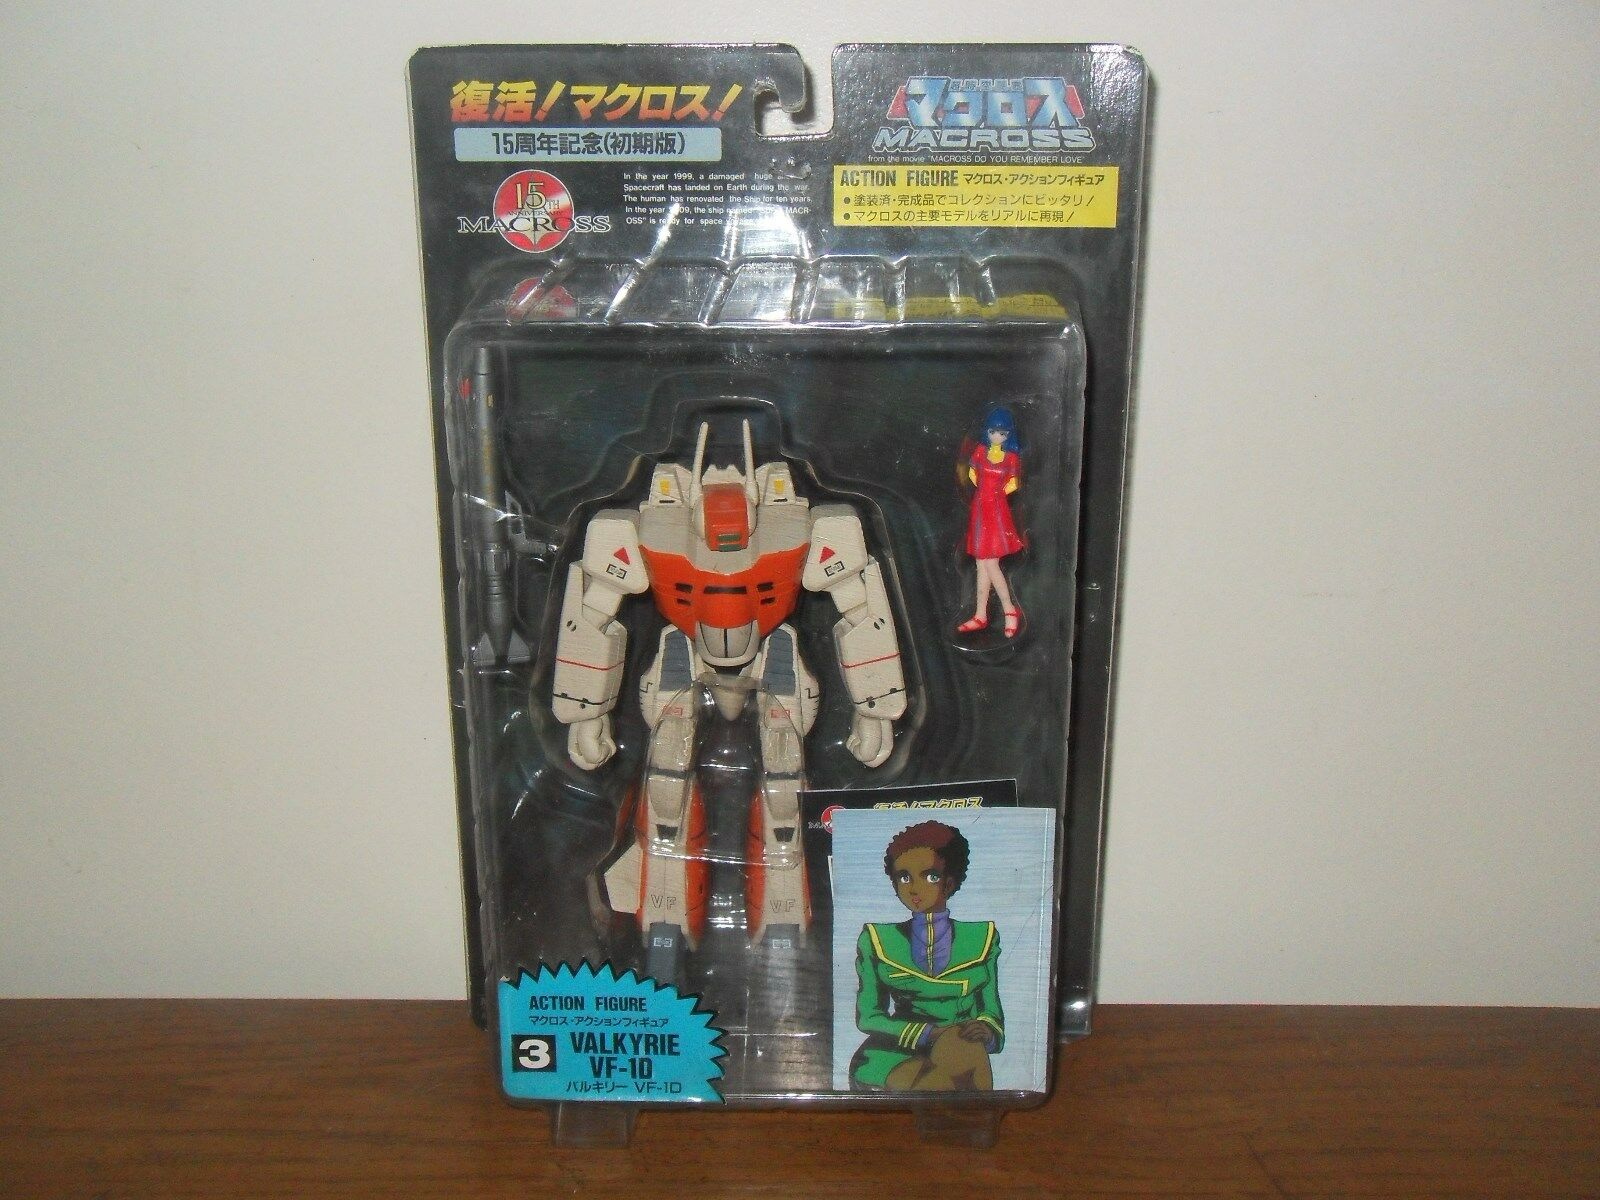 Robotech macross gakken super valkyrie vf 1d fighter